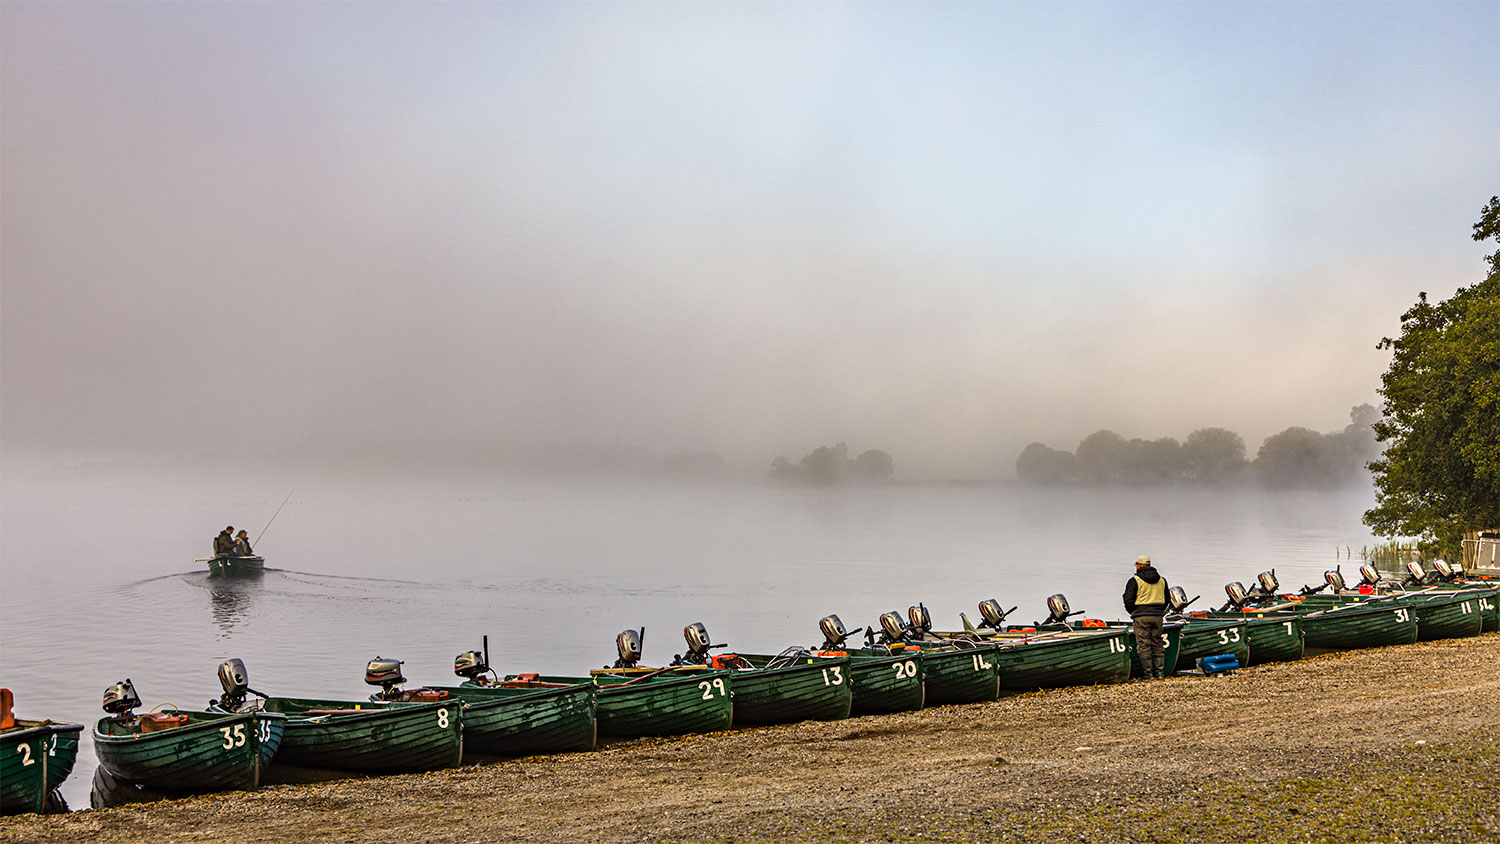 IMAGE: https://www.capnfishy.co.uk/wp-content/uploads/2020/09/Menteith24Sep20_2538-HDR.jpg